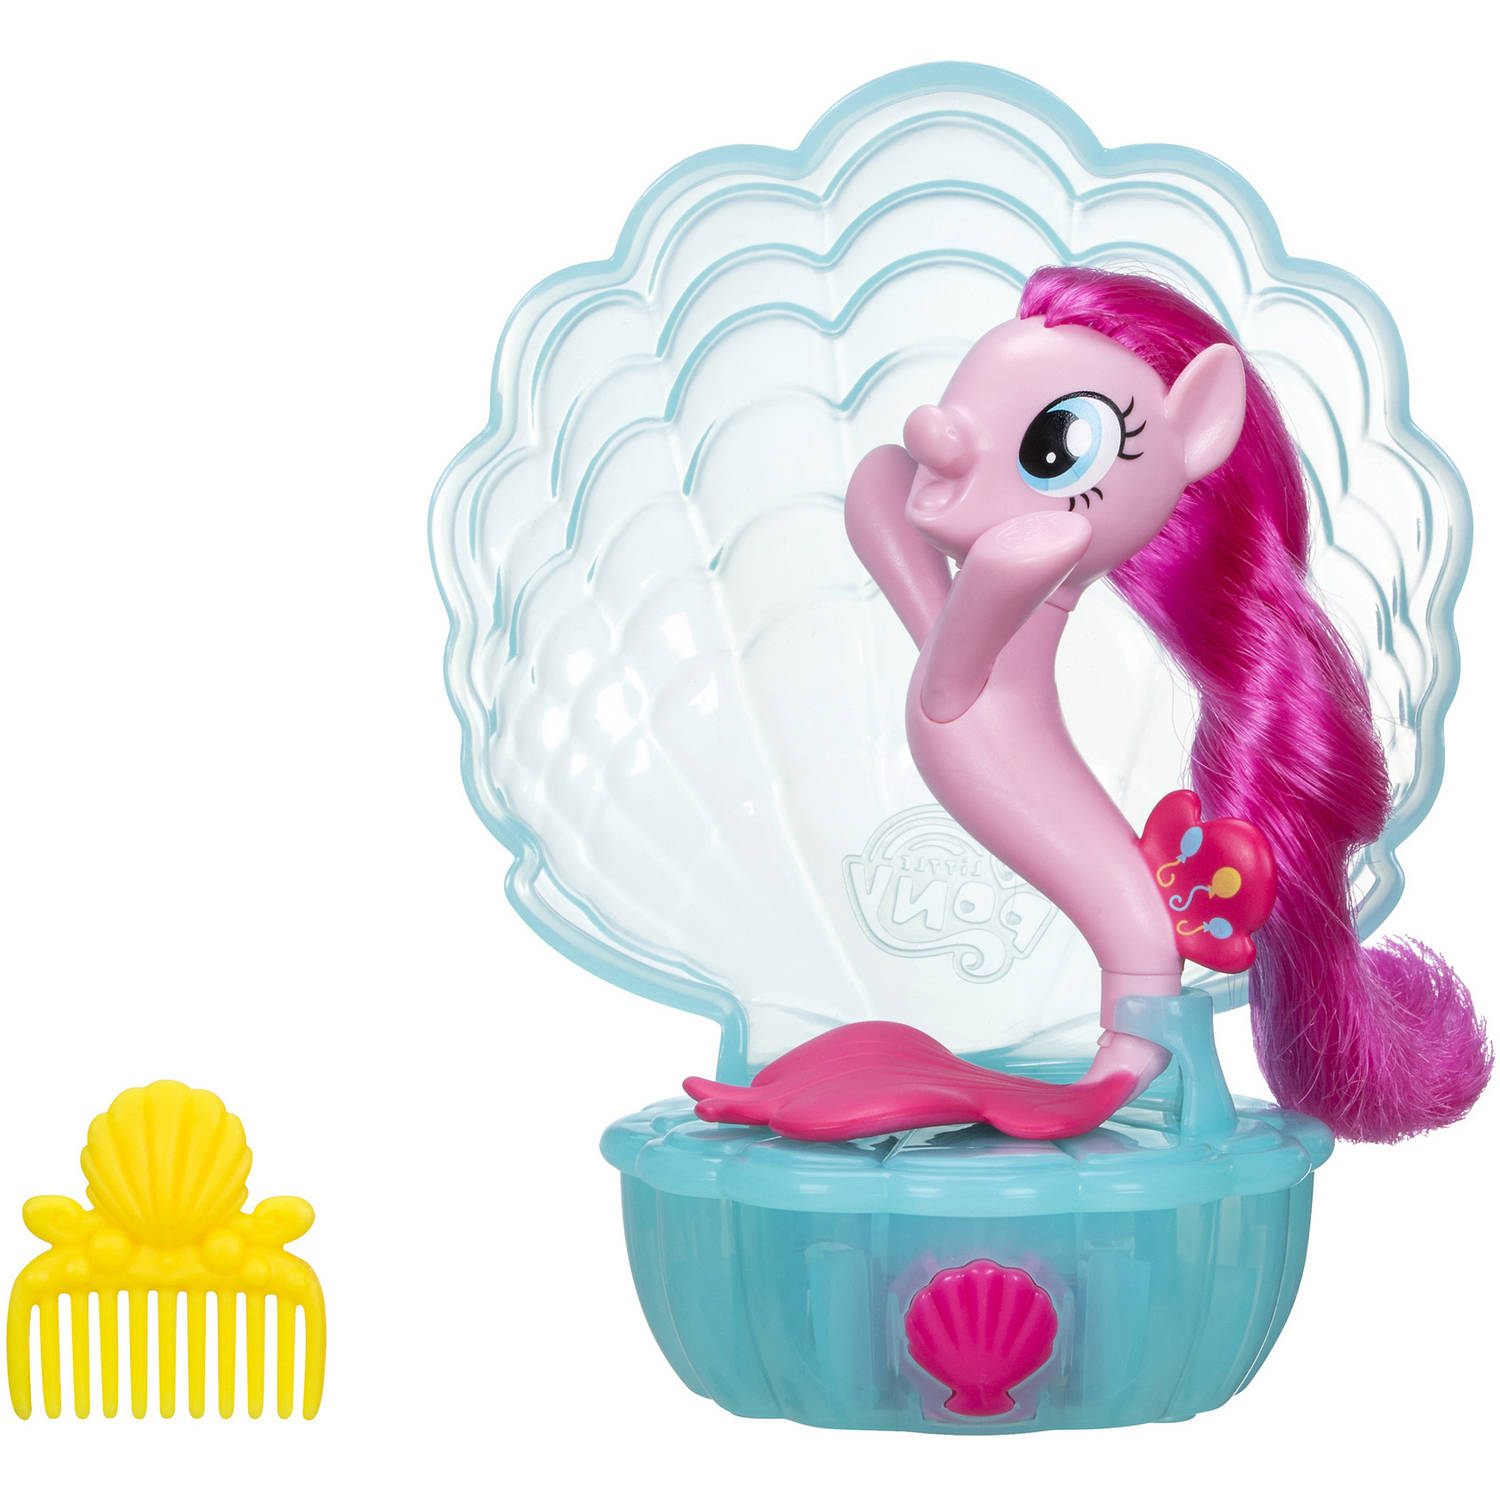 My Little Pony: The Movie Pinkie Pie Sea Song by